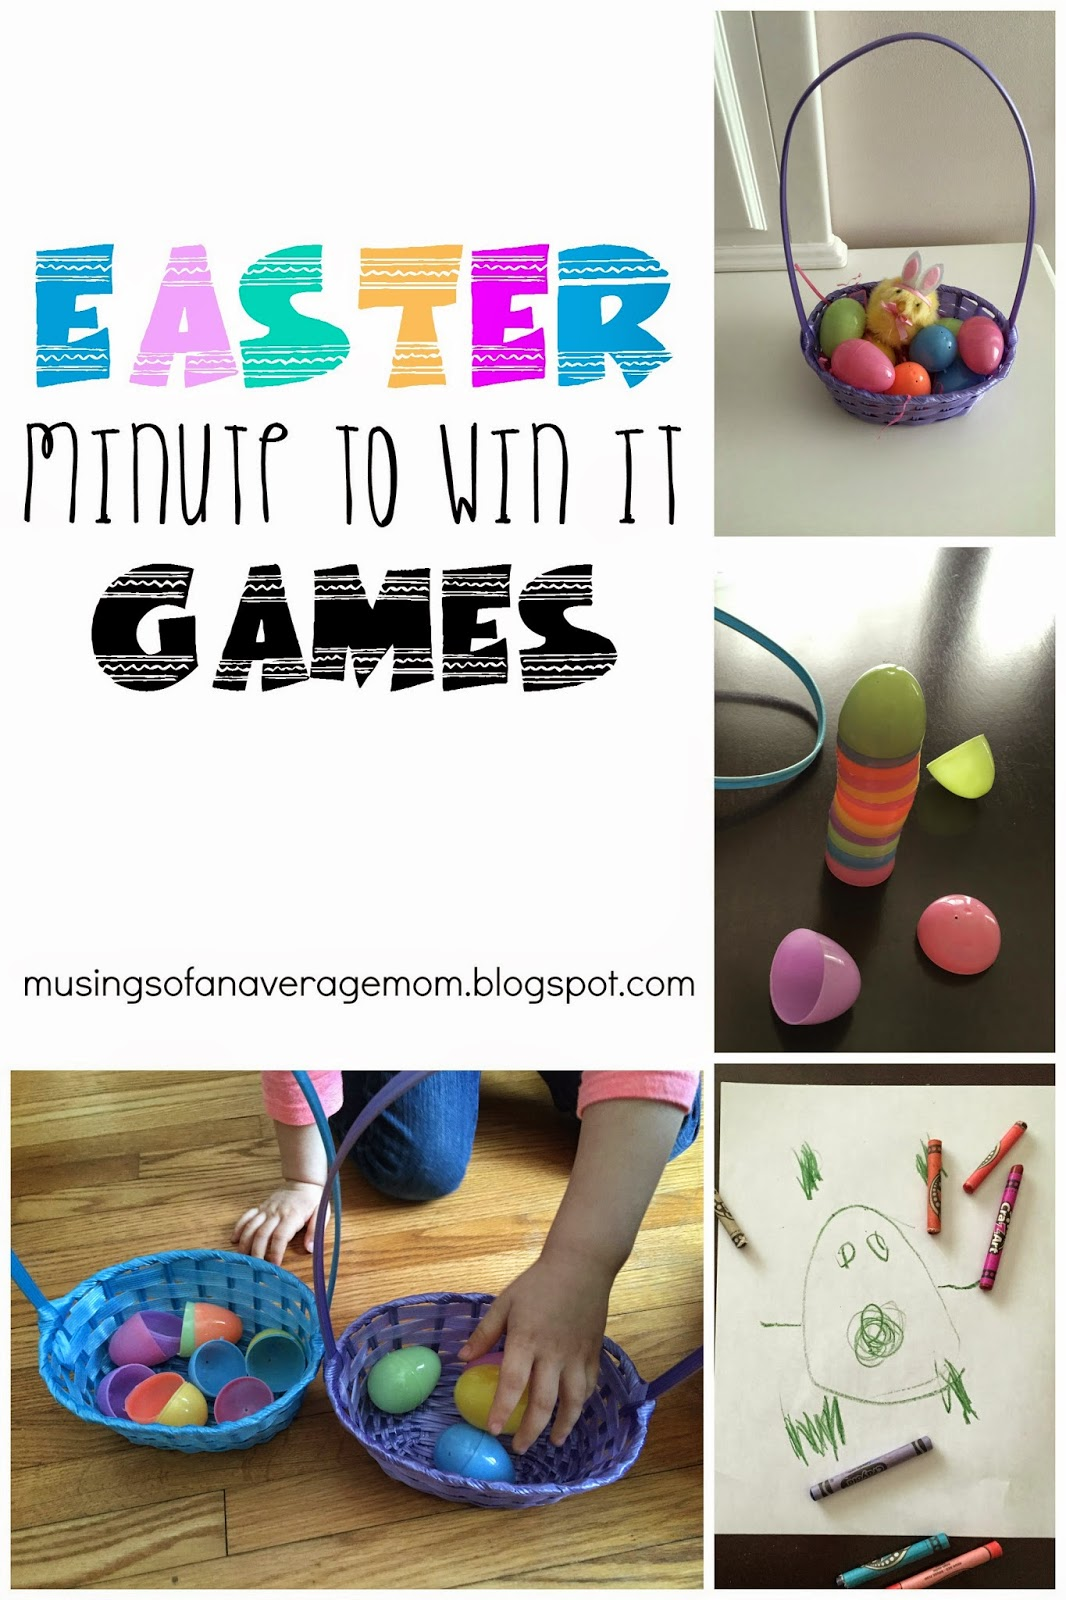 Musings of an Average Mom: Easter Minute to Win It